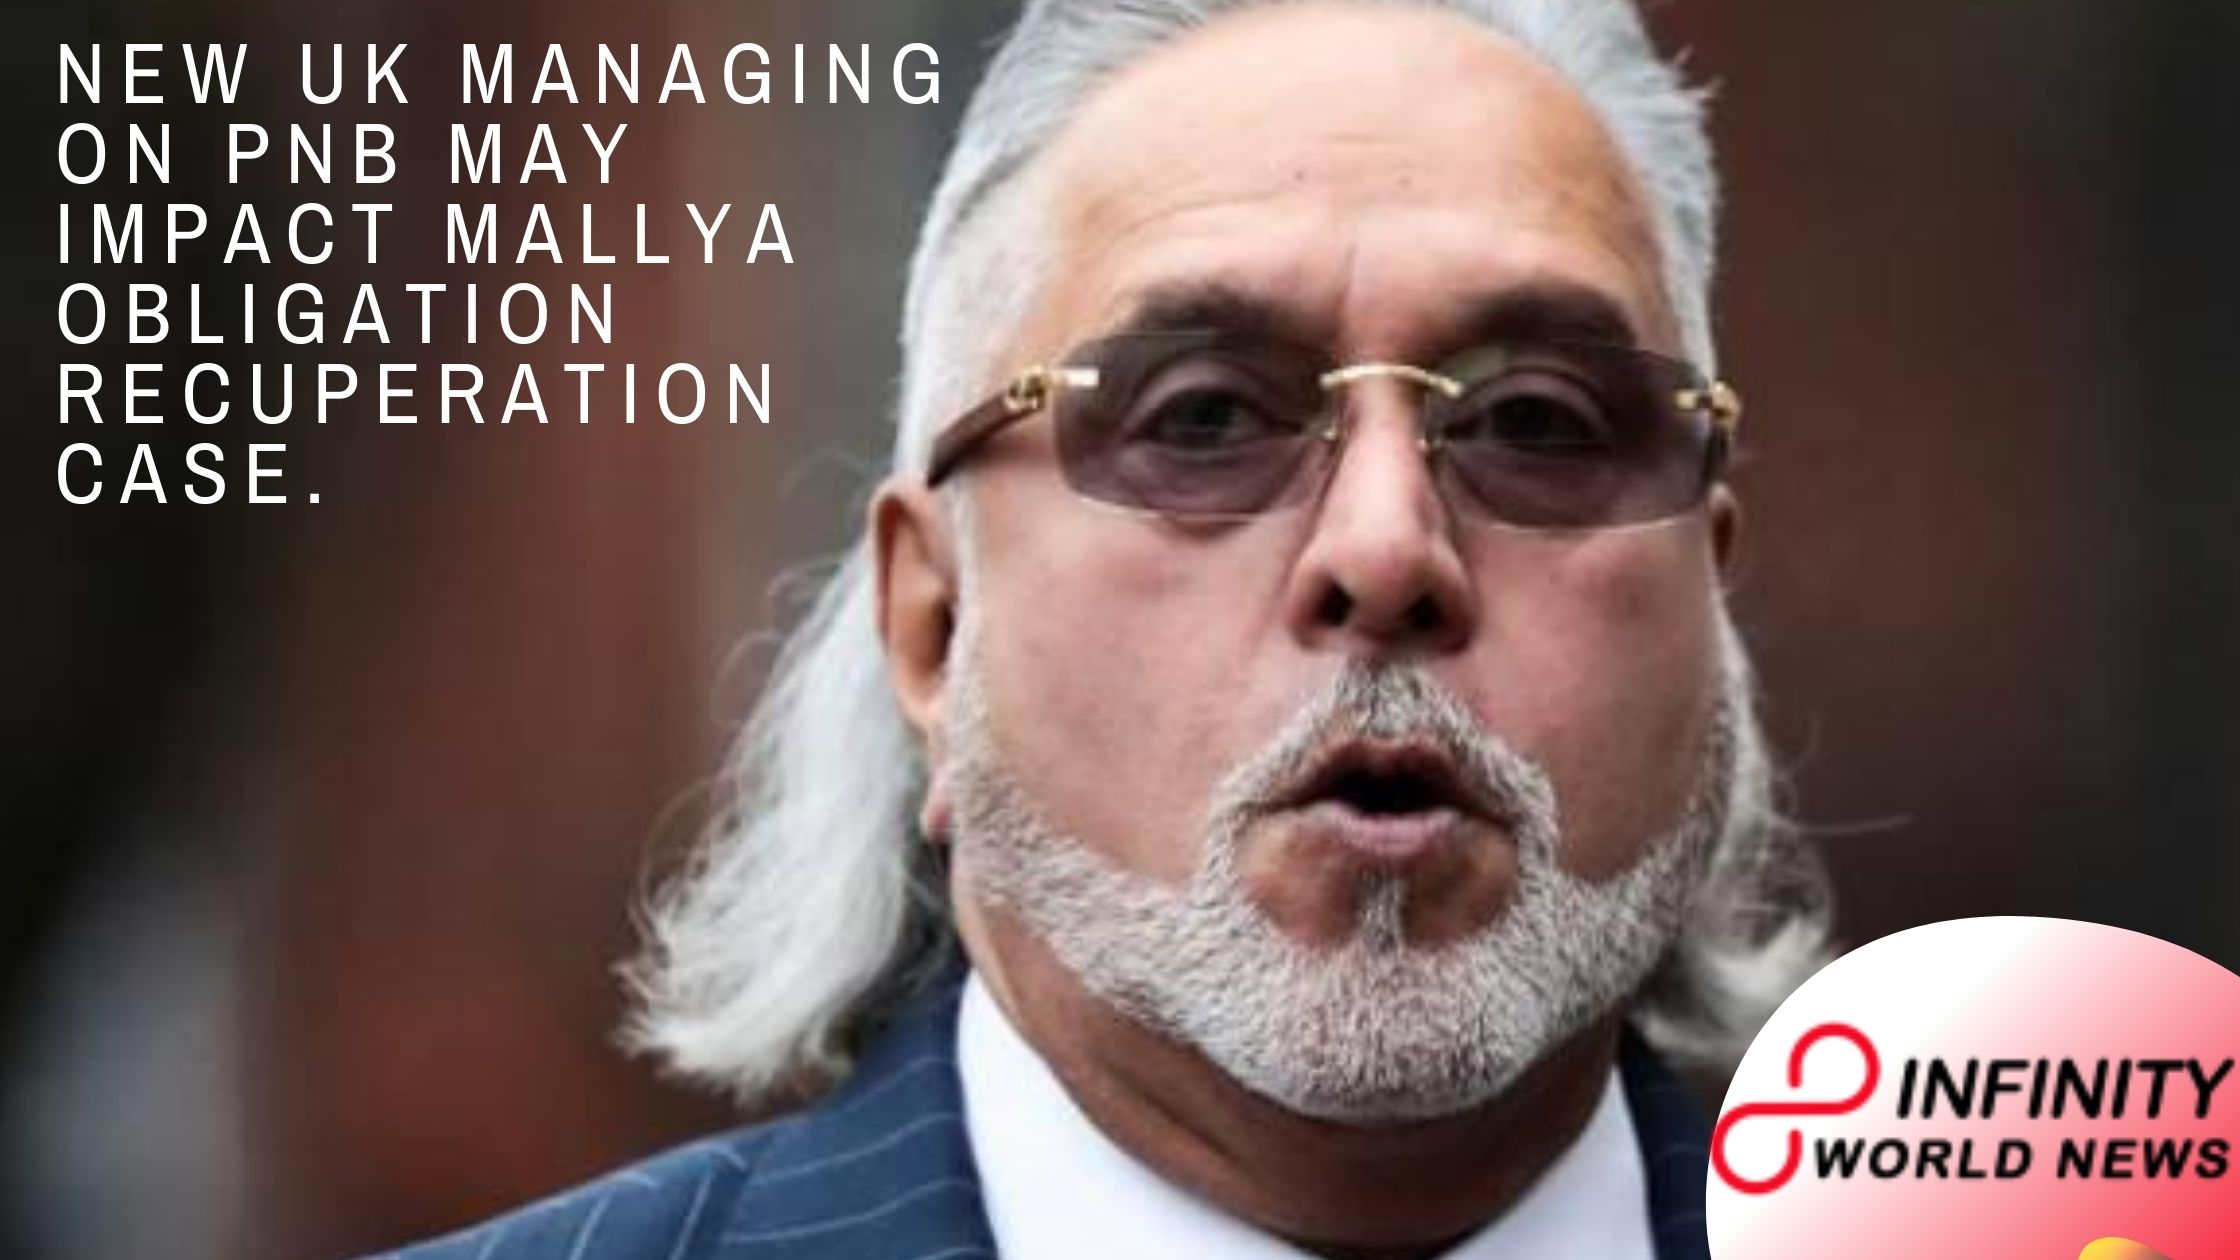 New UK managing on PNB may impact Mallya obligation recuperation case.